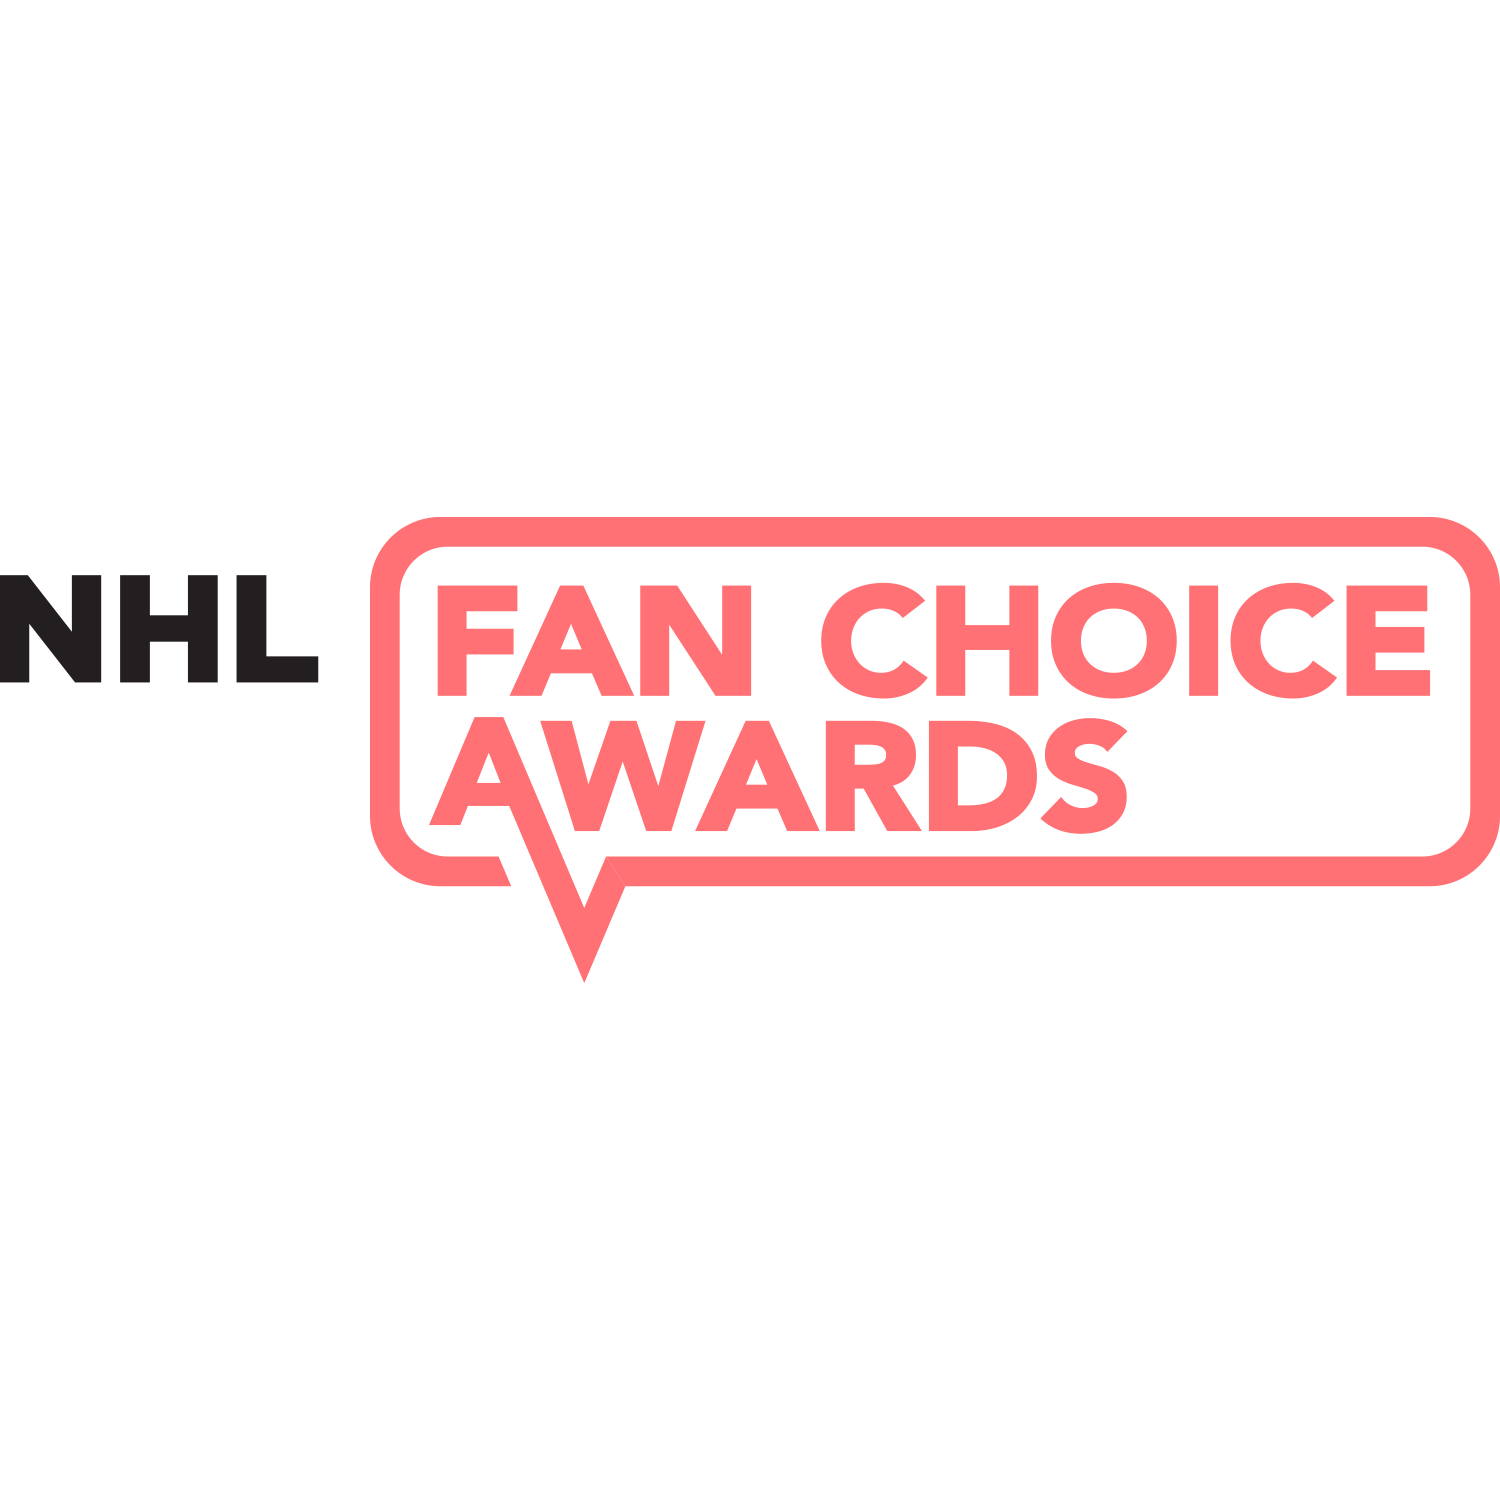 Image Media for Fan Choice Awards